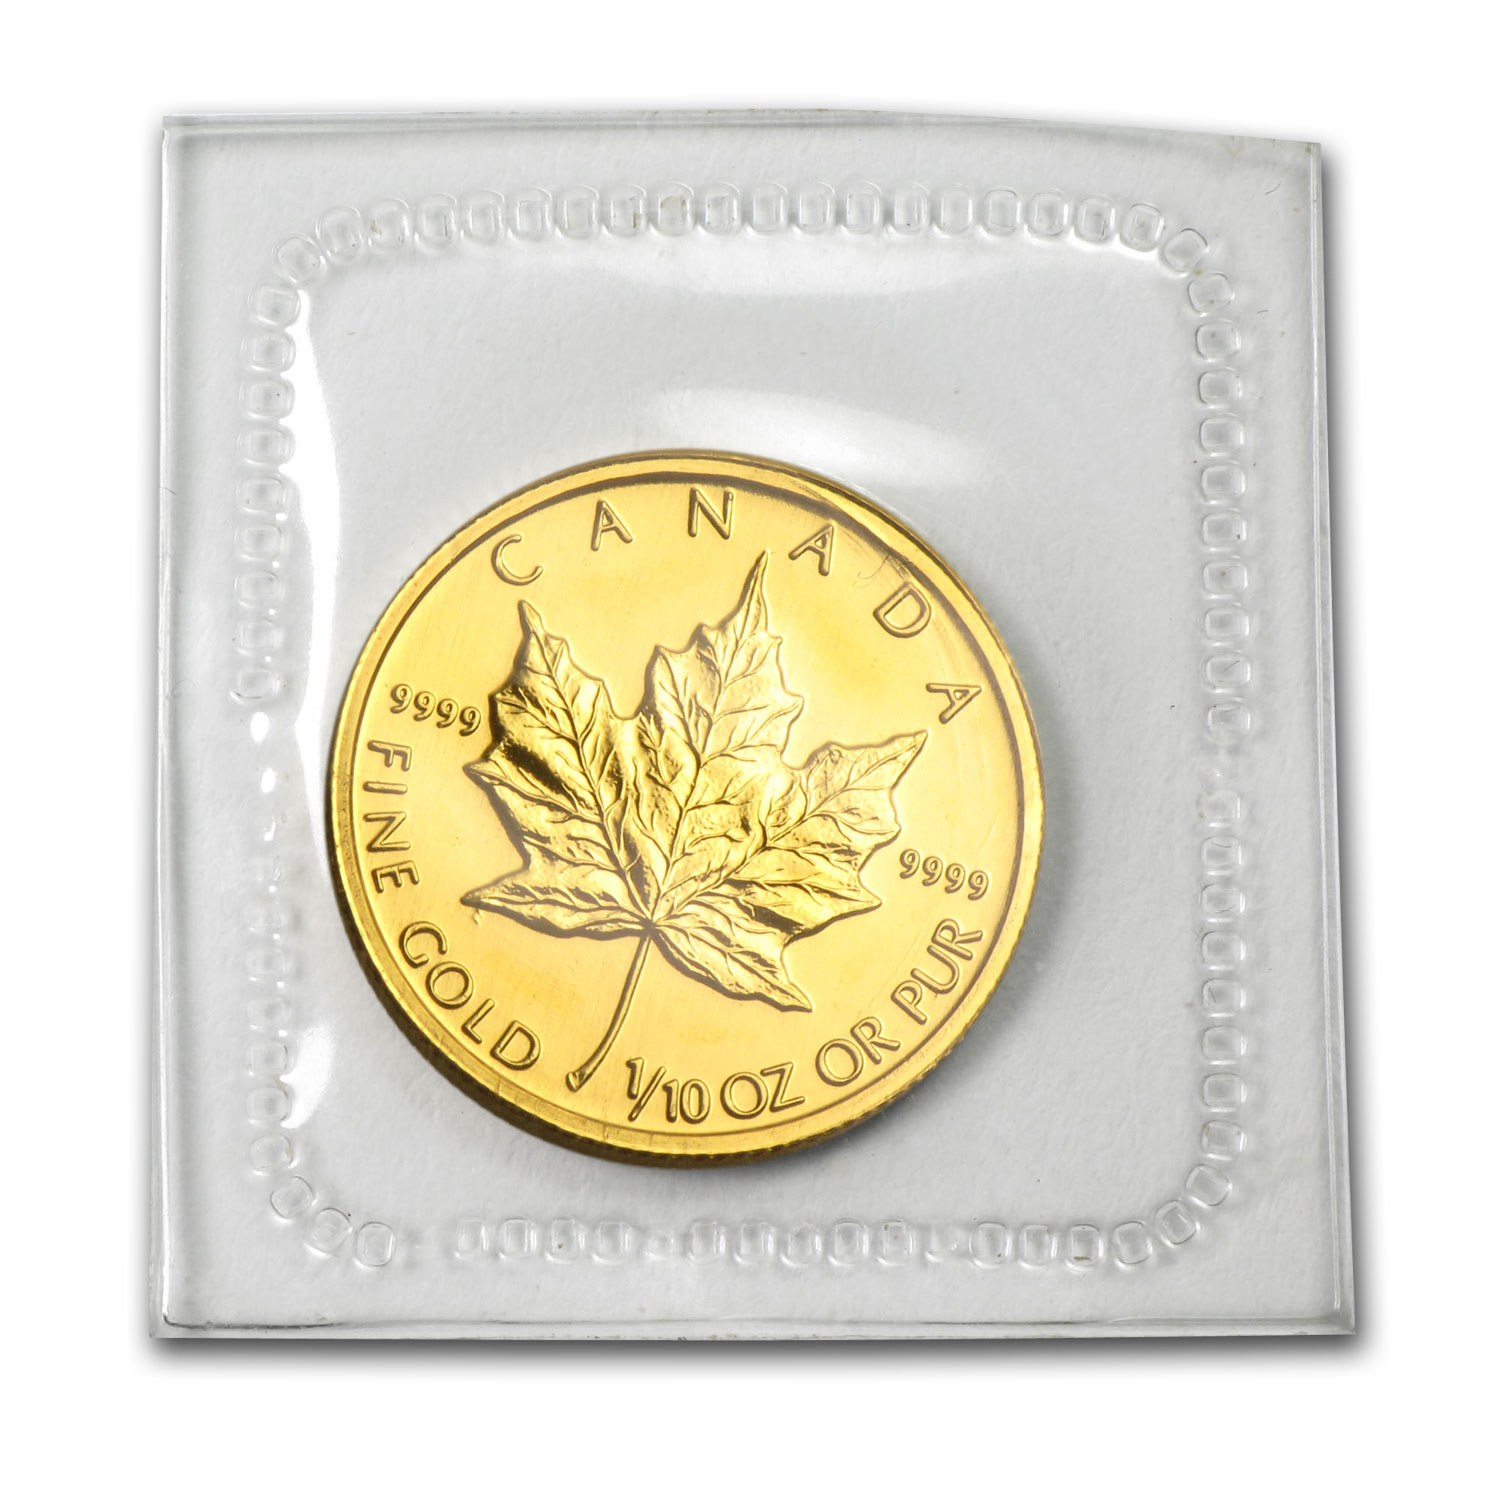 2005 1/10 oz Gold Canadian Maple Leaf